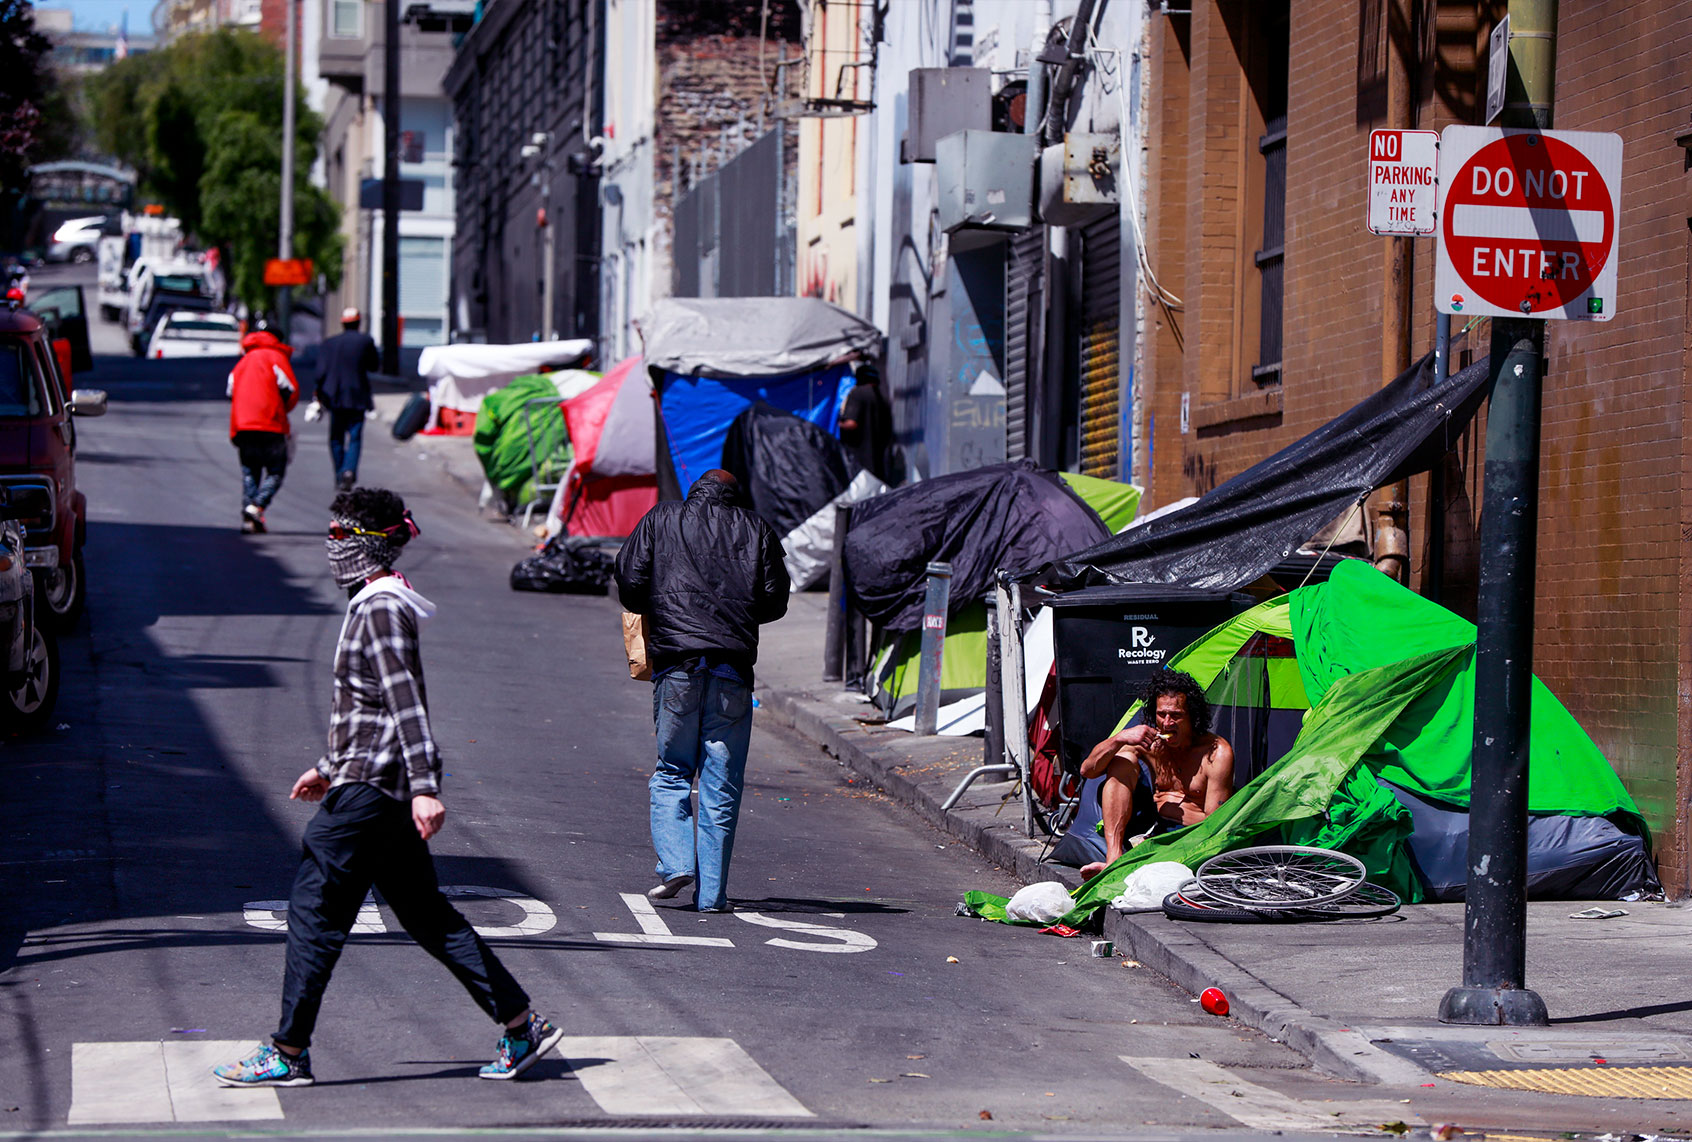 An RV park housing the homeless in San Francisco has become a runaway success story